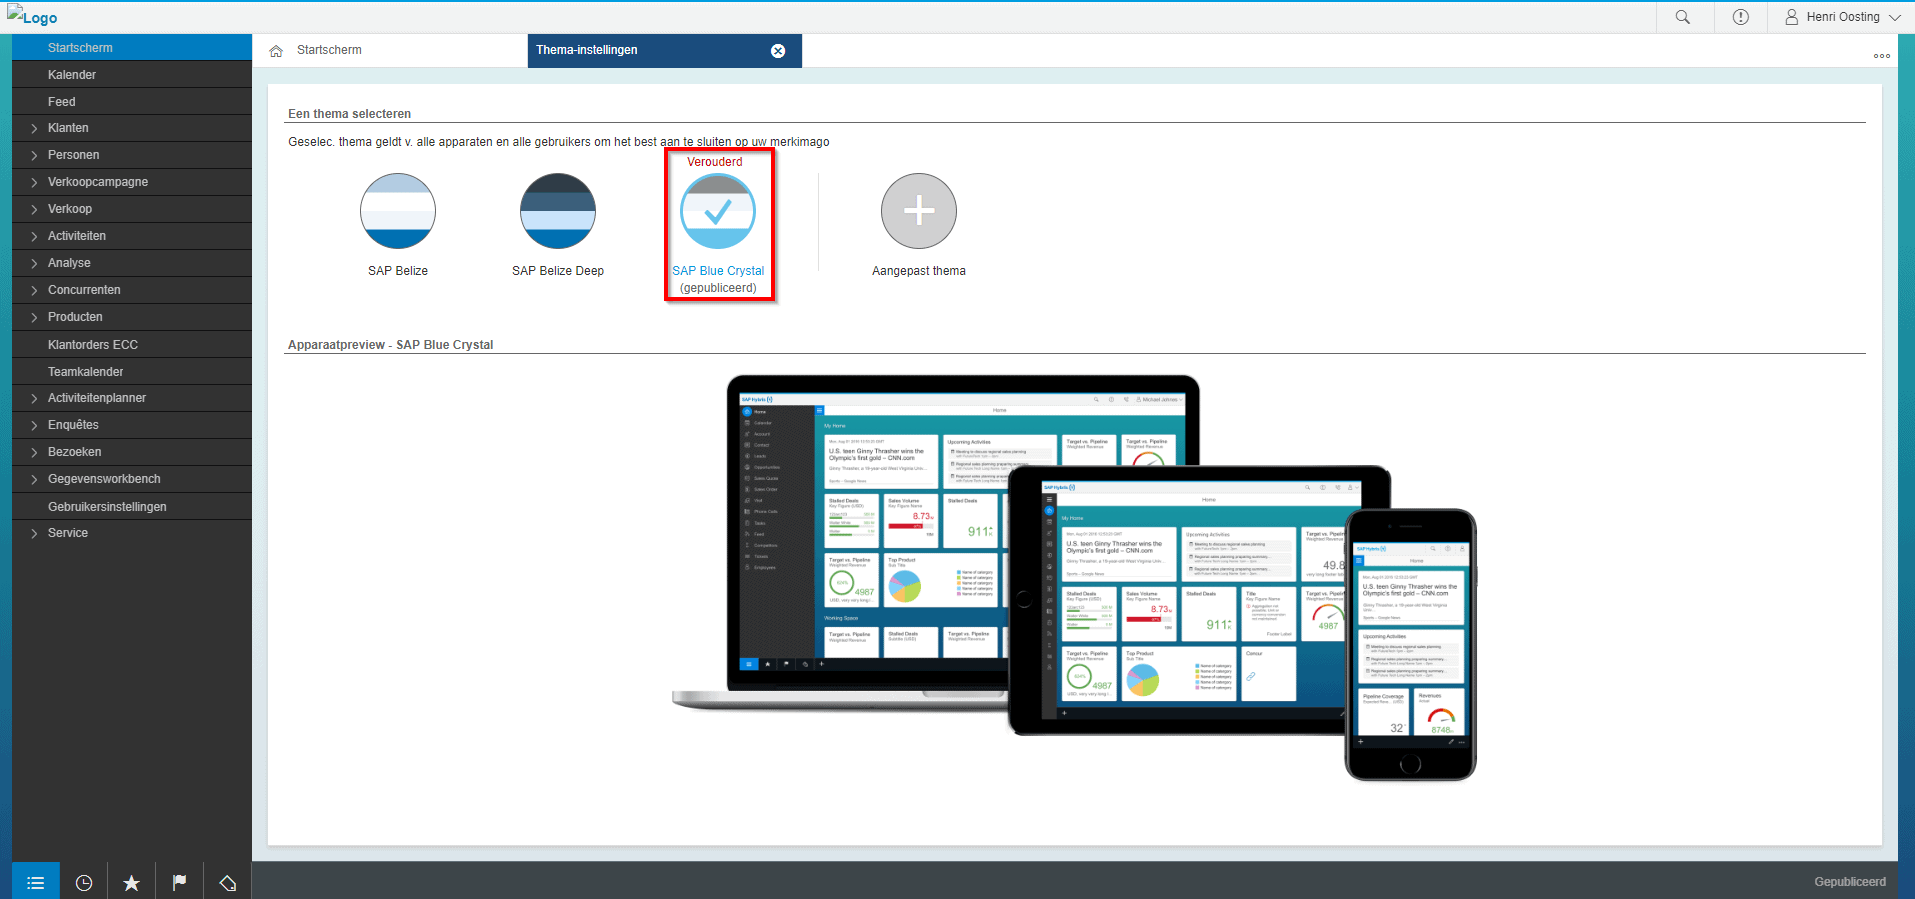 SAP Blue Crystal Thema 1902 release